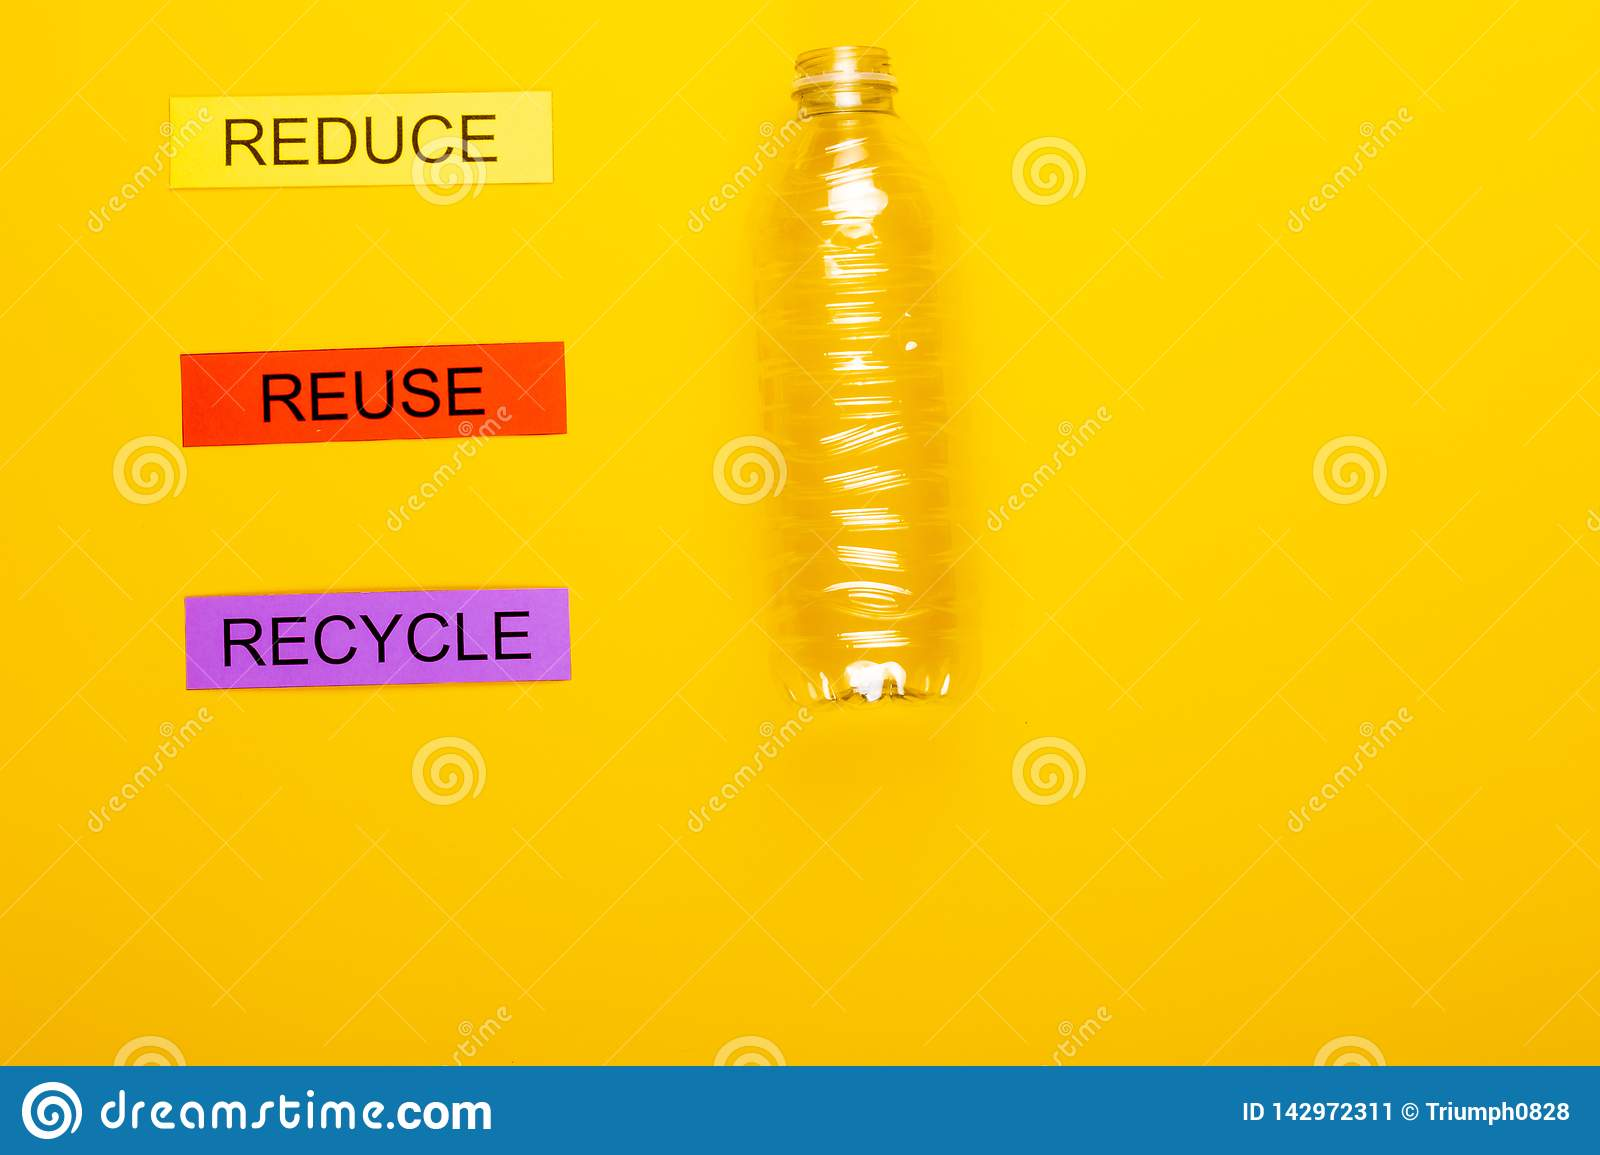 Reduce waste products stock image  Image of trash, reuse